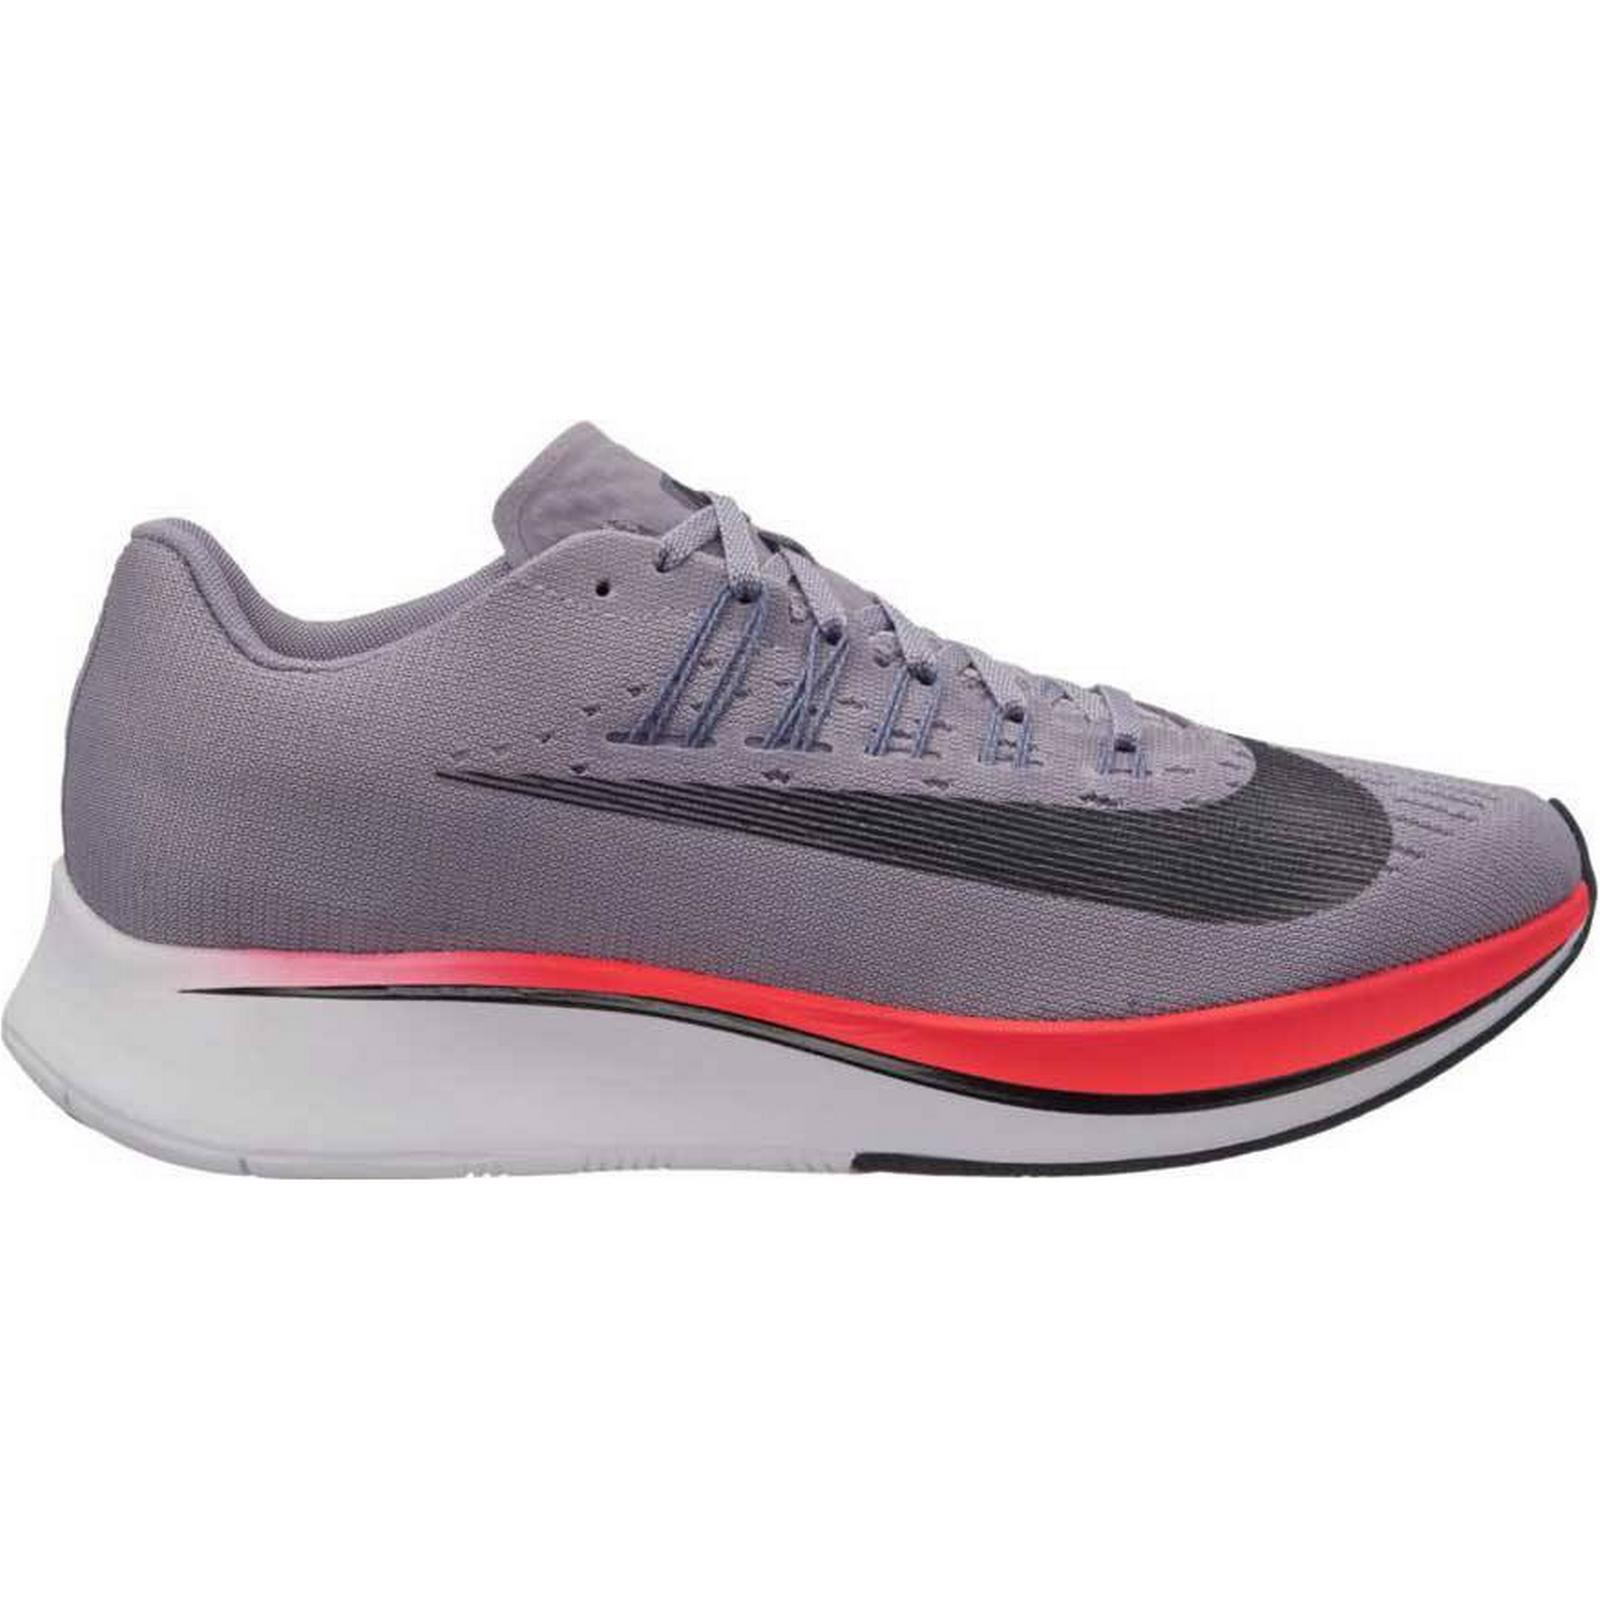 Man's/Woman's Fly - Nike Zoom Fly Man's/Woman's - Multiple new designs 722bc3